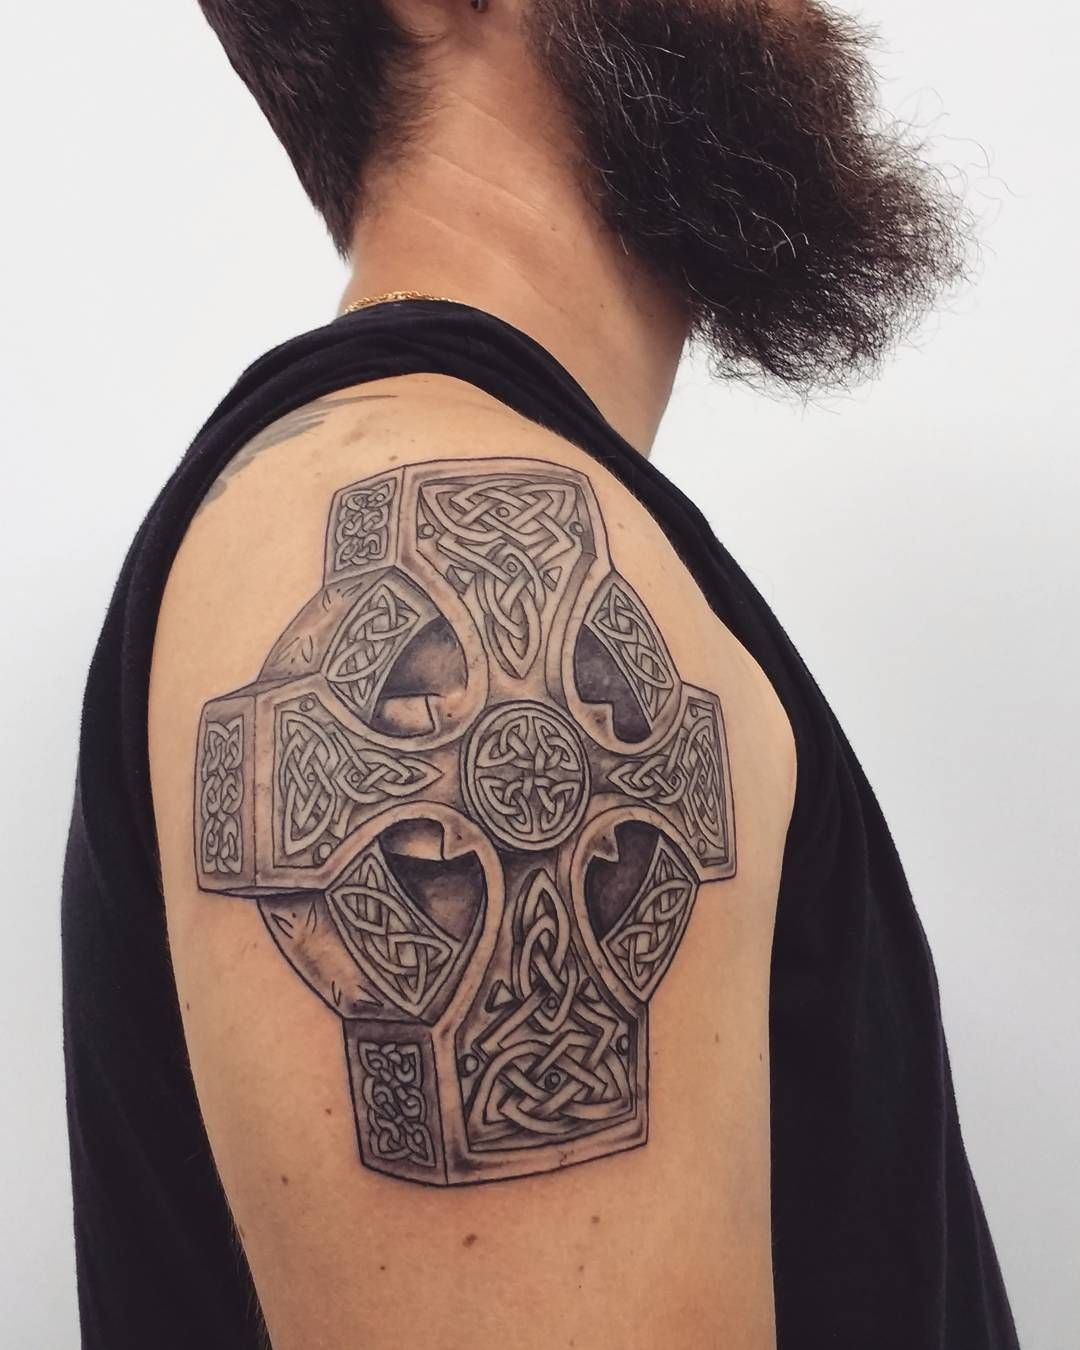 cool 70 Traditional Celtic Cross Tattoo Designs -  A Visual Representation of Faith and Heritage Check more at http://stylemann.com/best-celtic-cross-tattoo-designs/